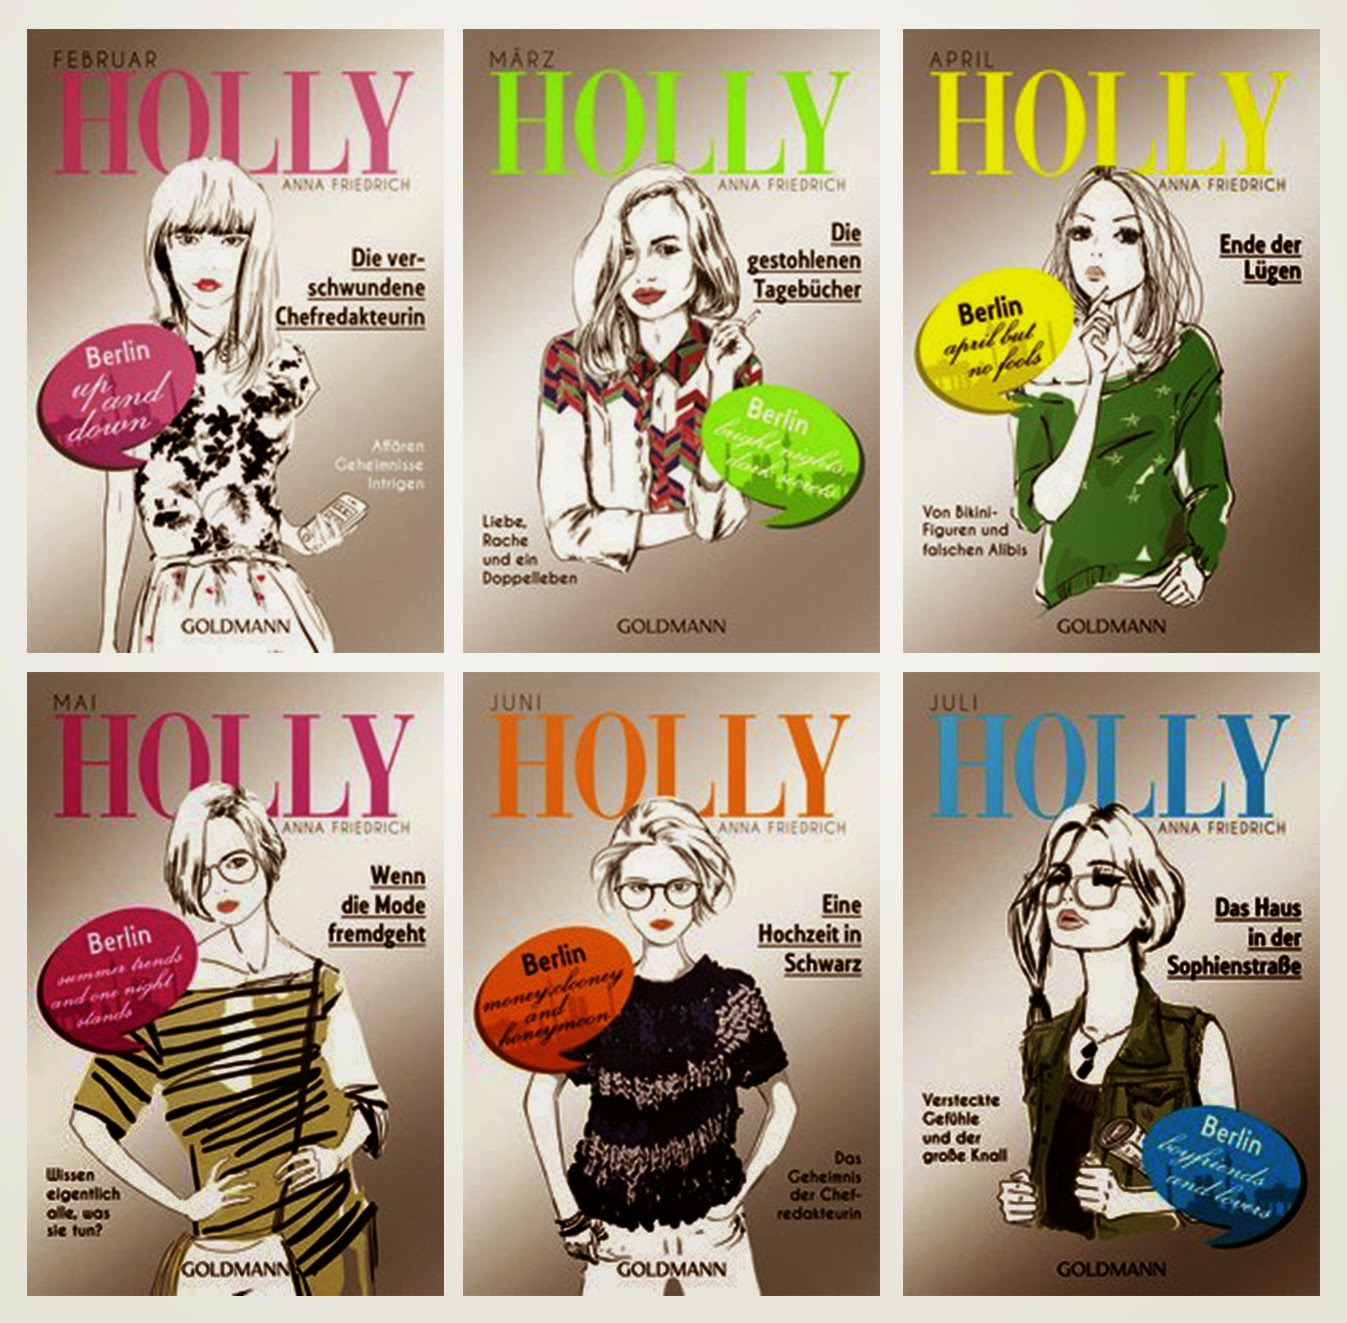 http://www.holly-magazin.de/